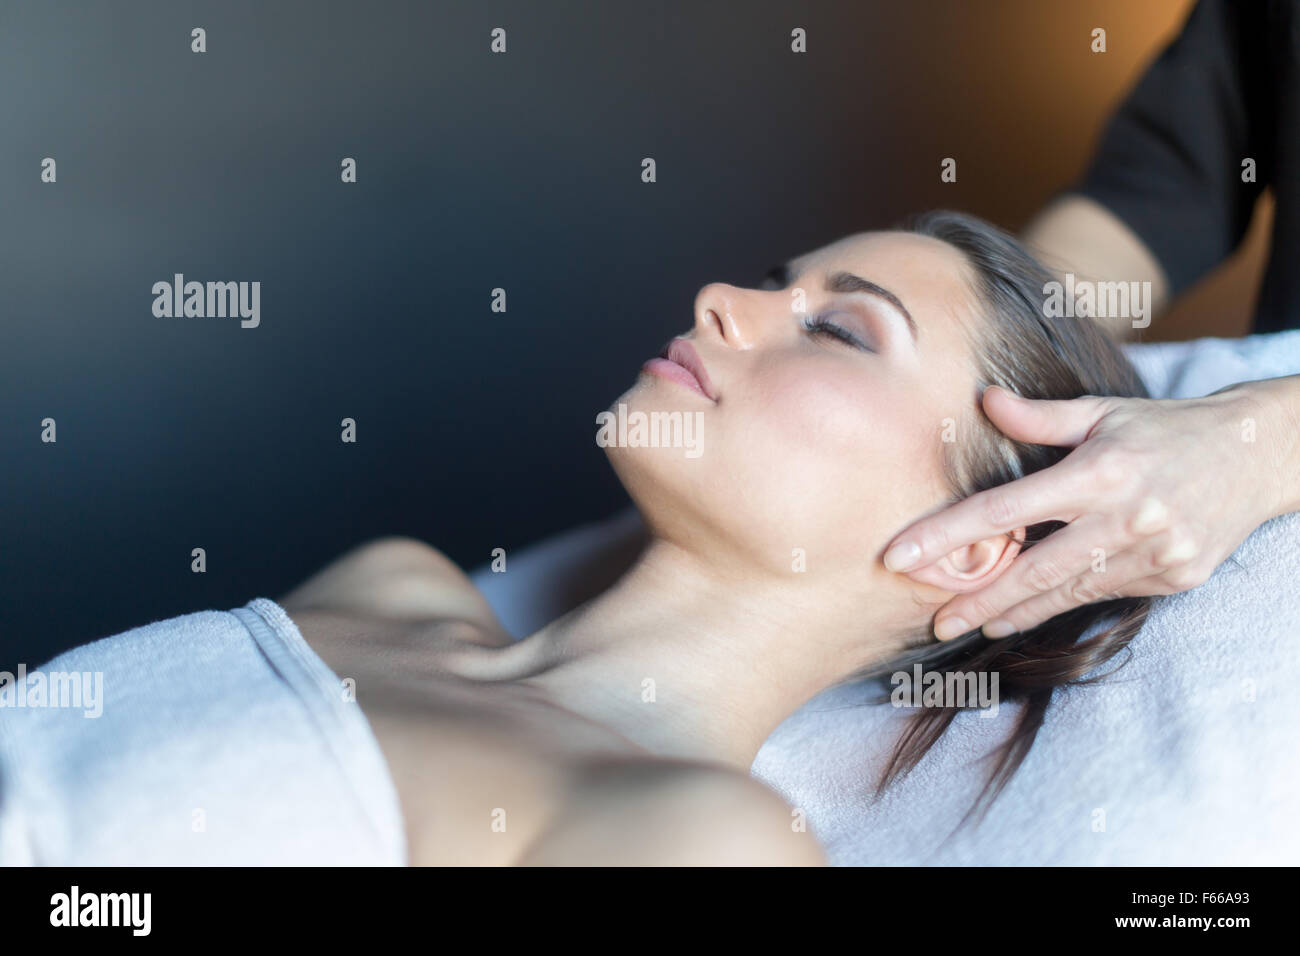 Masseur treating face of a beautiful, young woman lying on the massage table Stock Photo